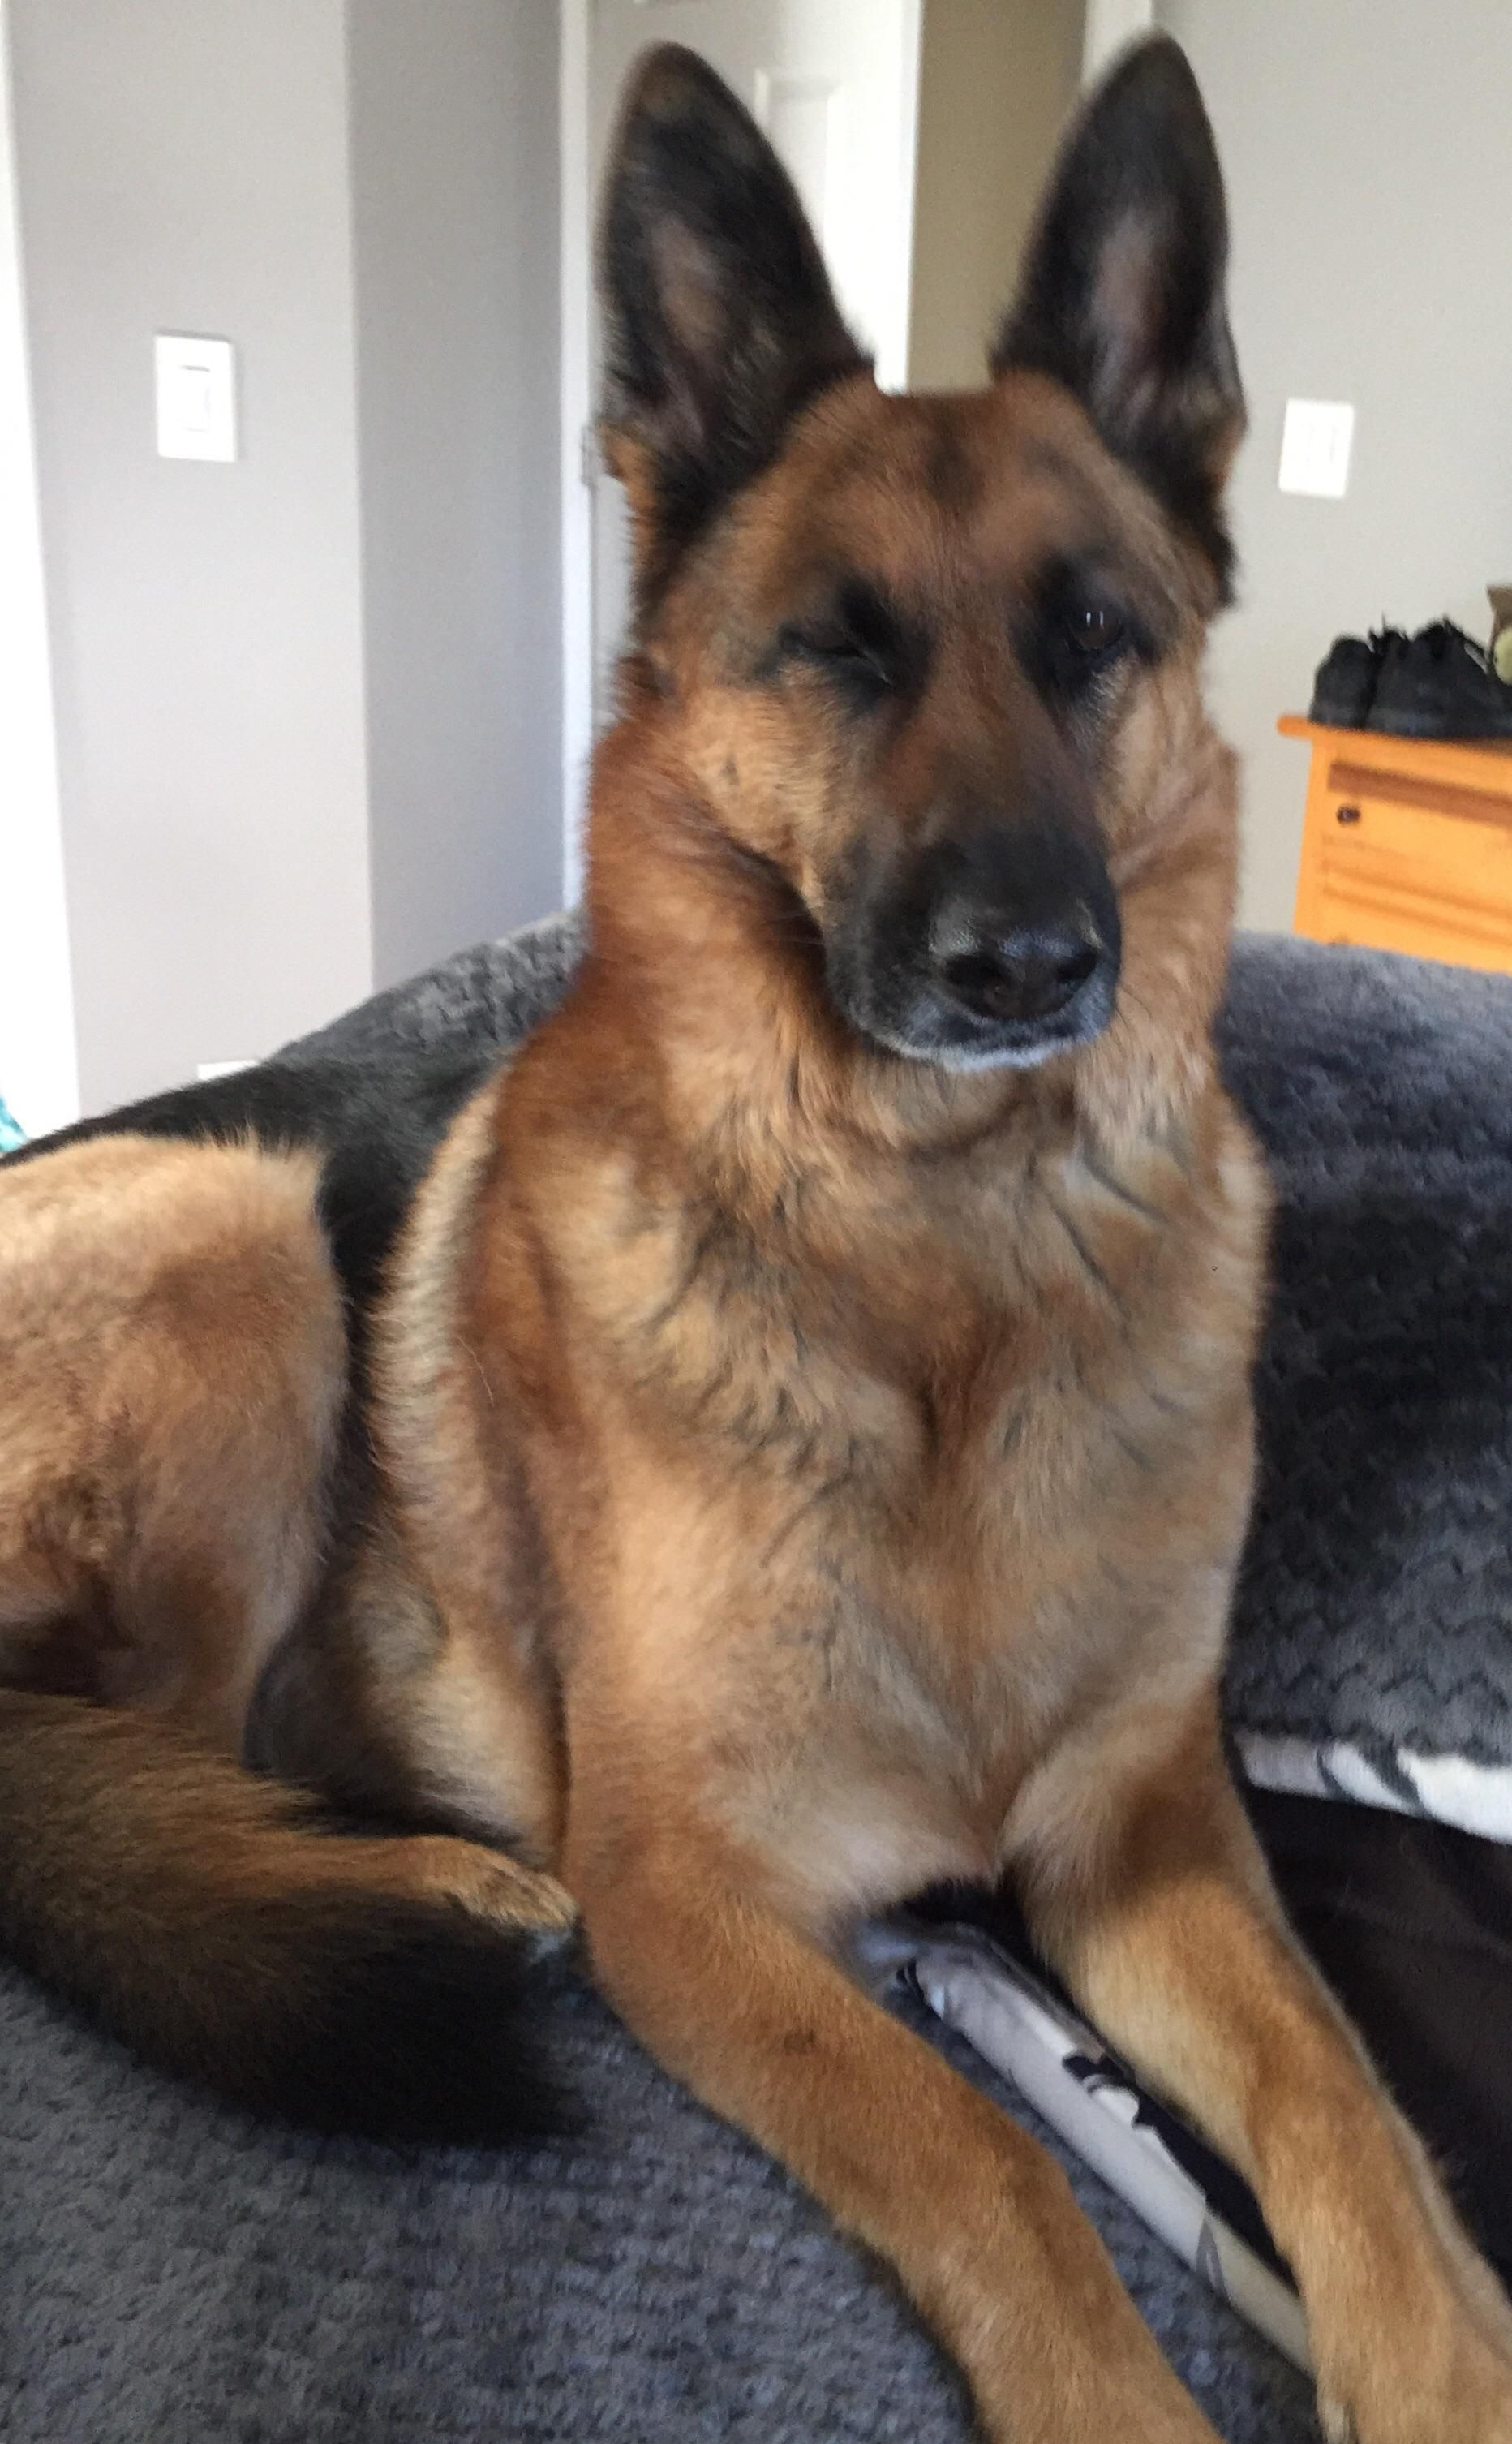 My German Shepard Winking At Me Dogpictures Dogs Aww Cuteanimals Dogsoftwitter Dog Cute German Sheperd Dogs German Shepherd Dogs Shepherd Dog